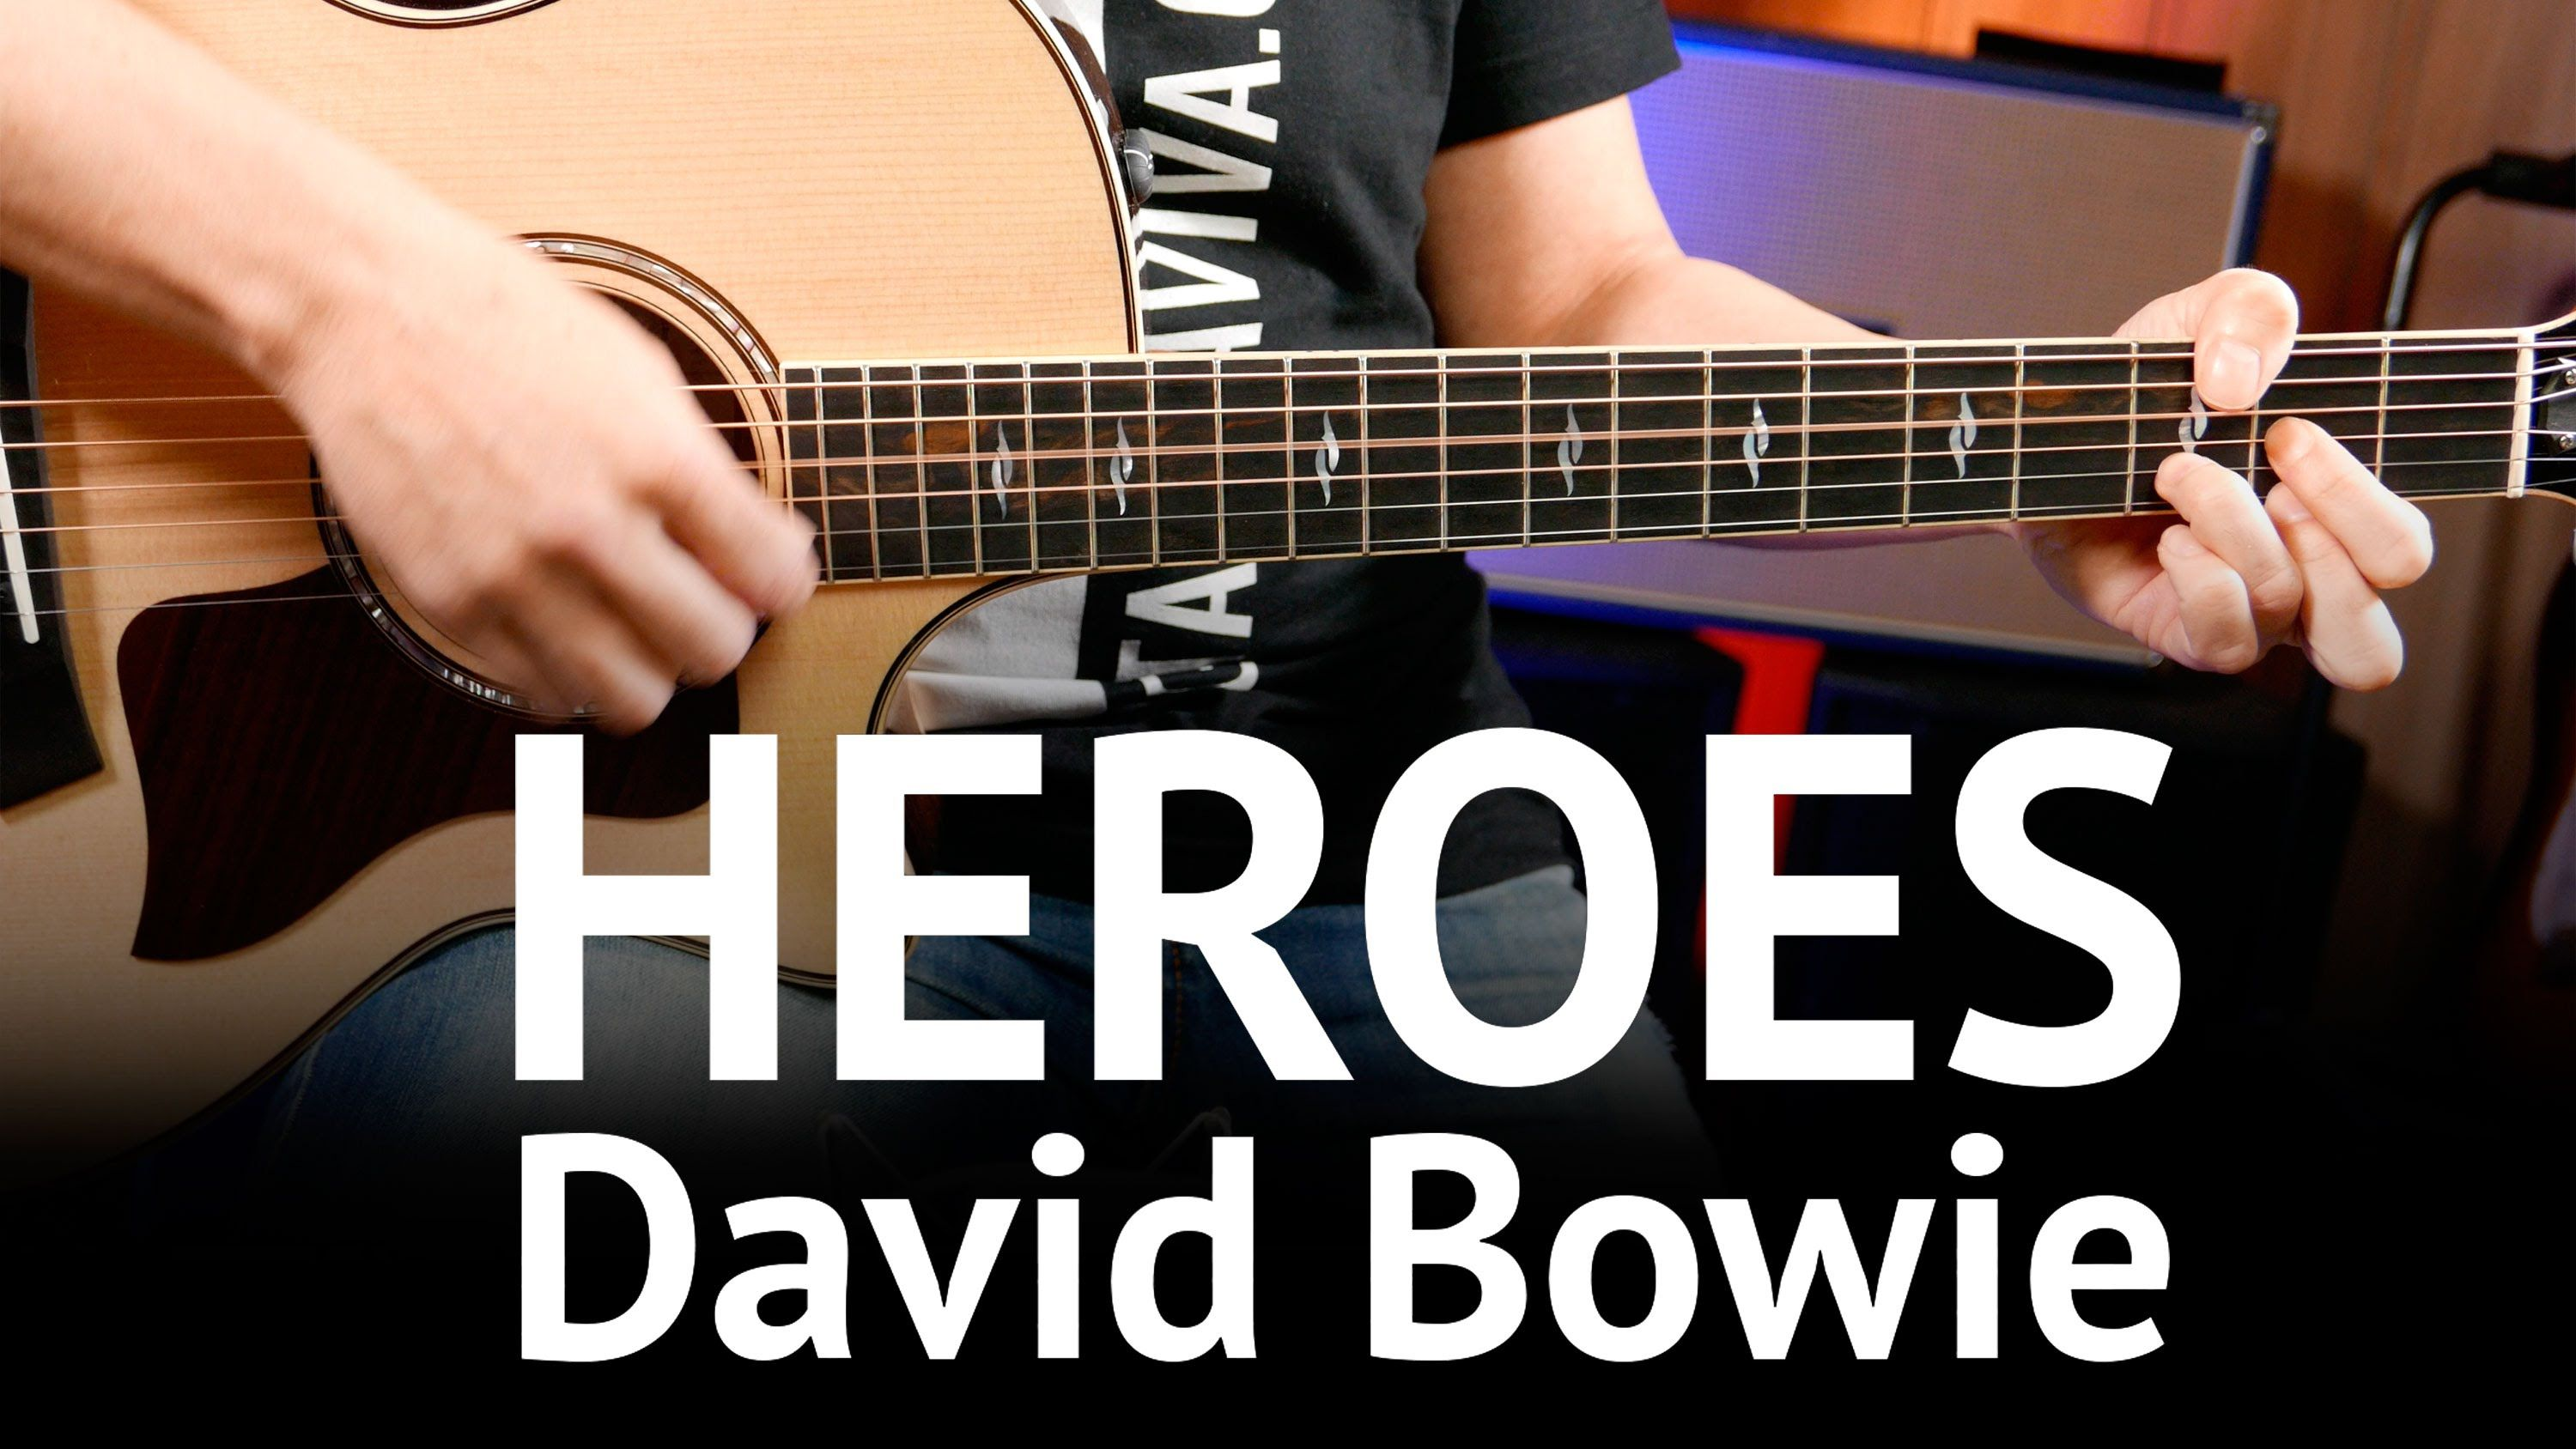 Heroes David Bowie Guitar Chords Cover On Guitar How To Play